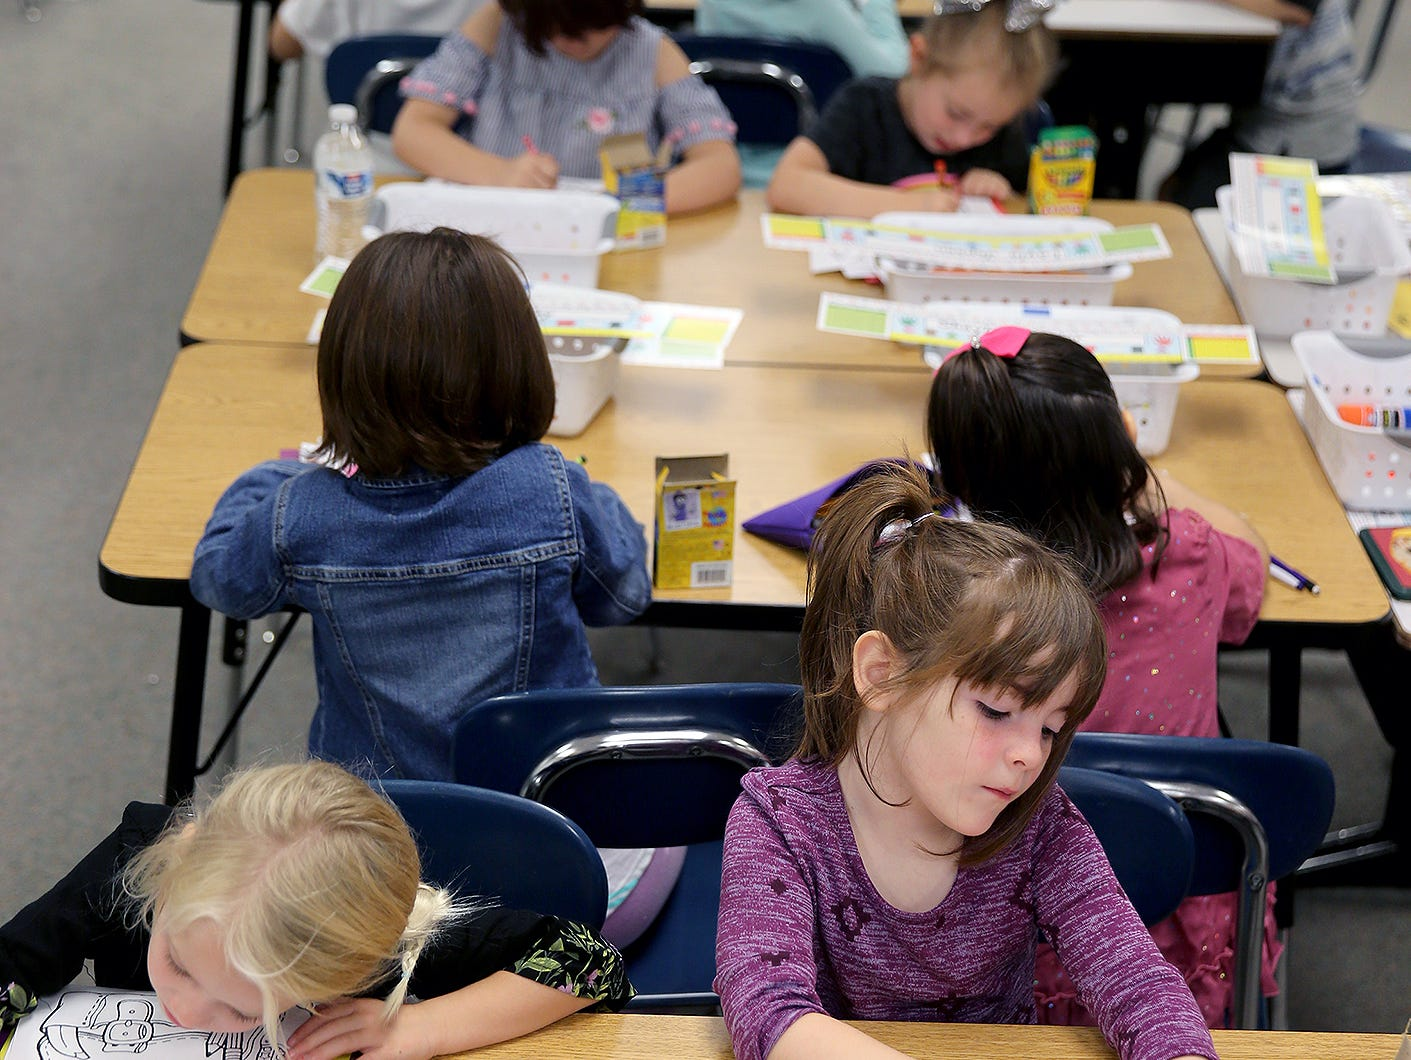 First graders Ensley Bakken, left, and Lucy Dempsey color during class.